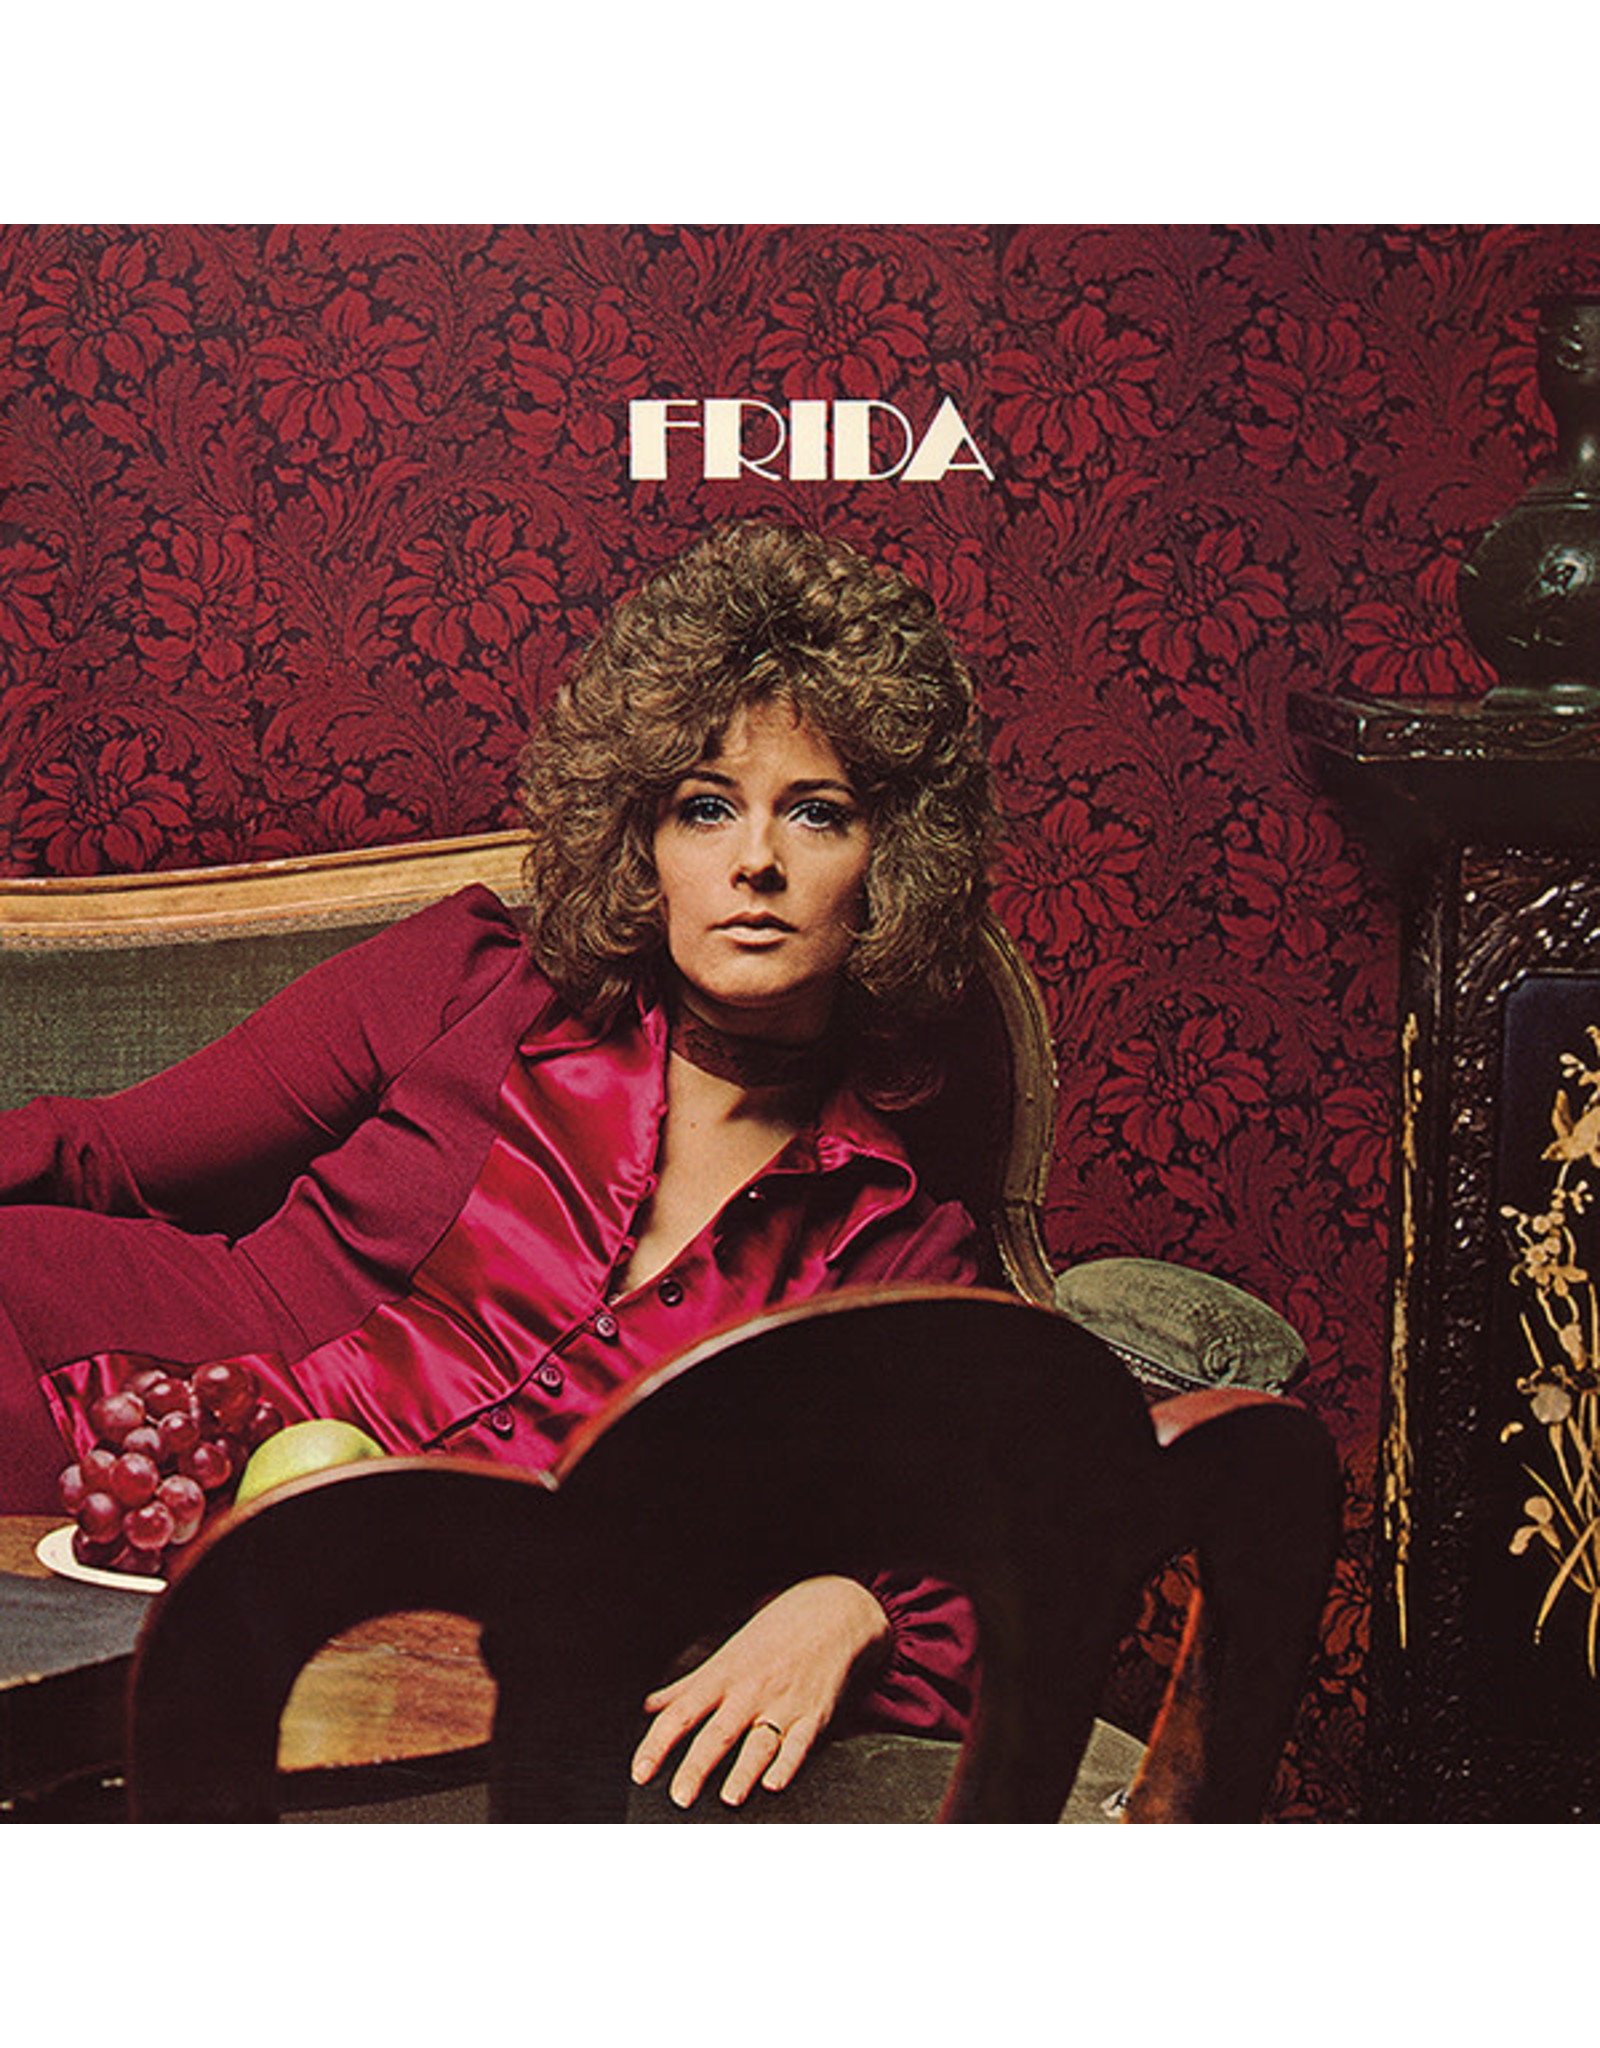 Frida (Abba) - S/T LP